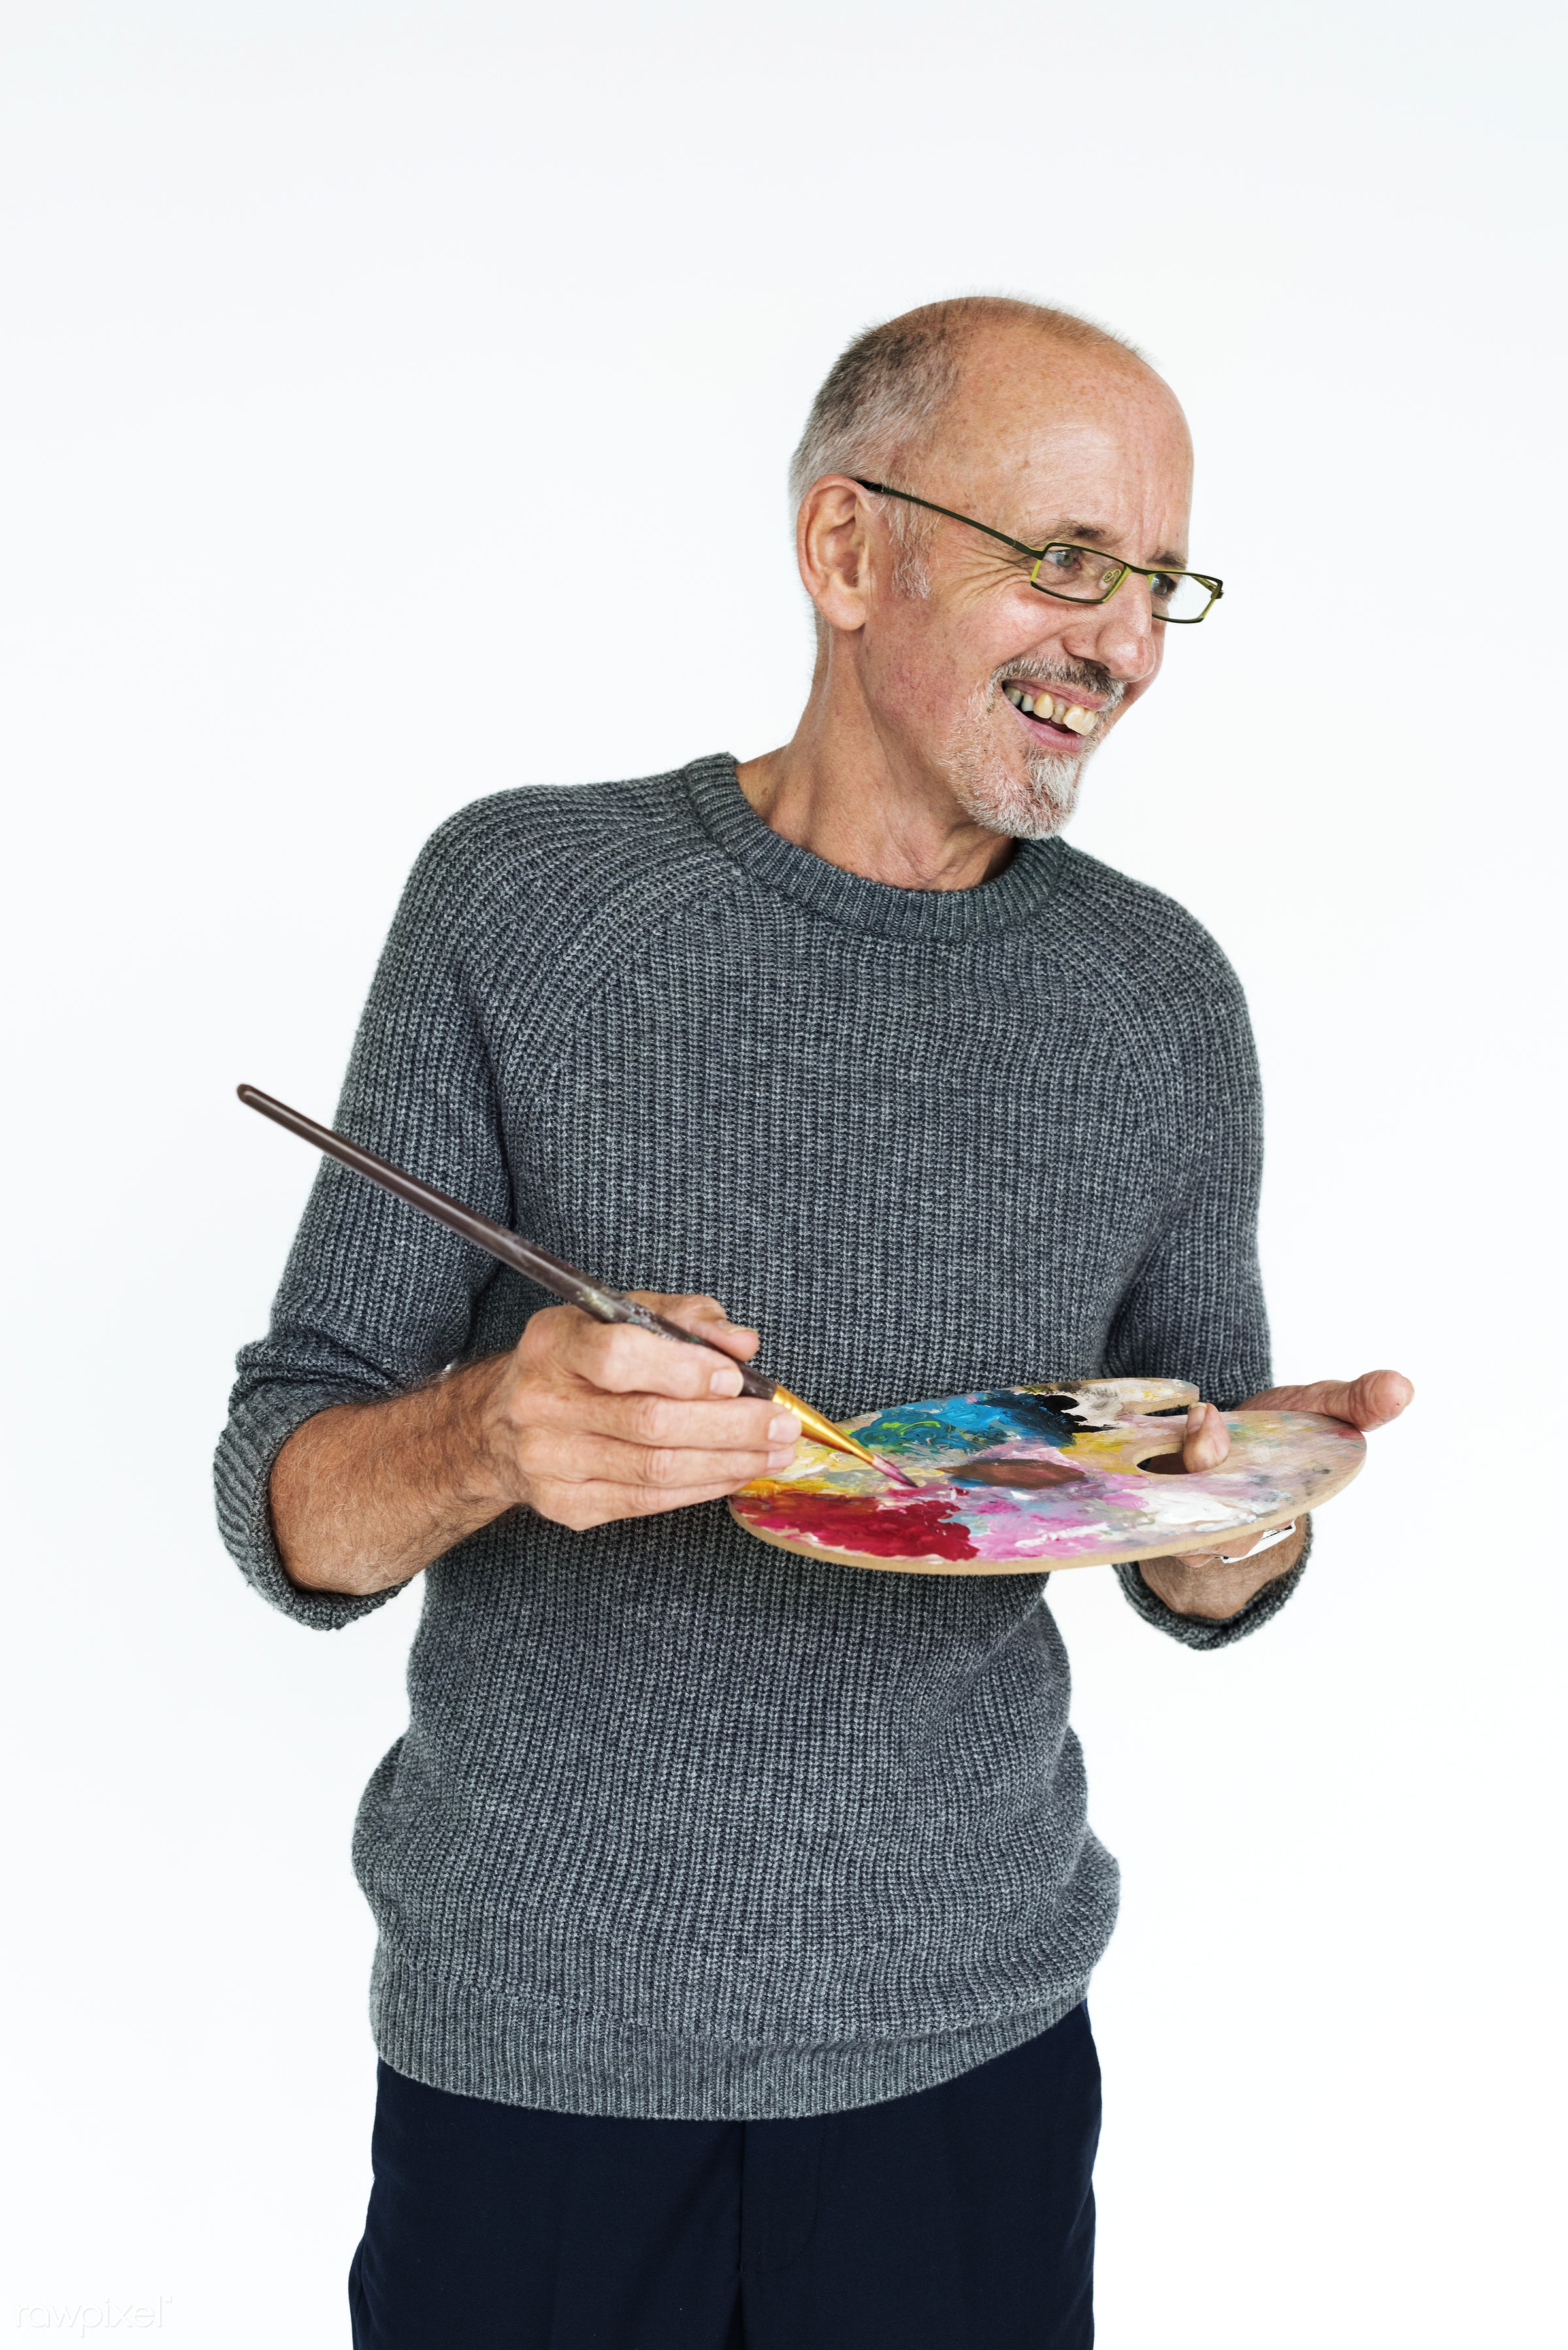 studio, expression, person, holding, palette, people, lifestyle, cheerful, smiling, isolated, laugh, creative, colors, art,...